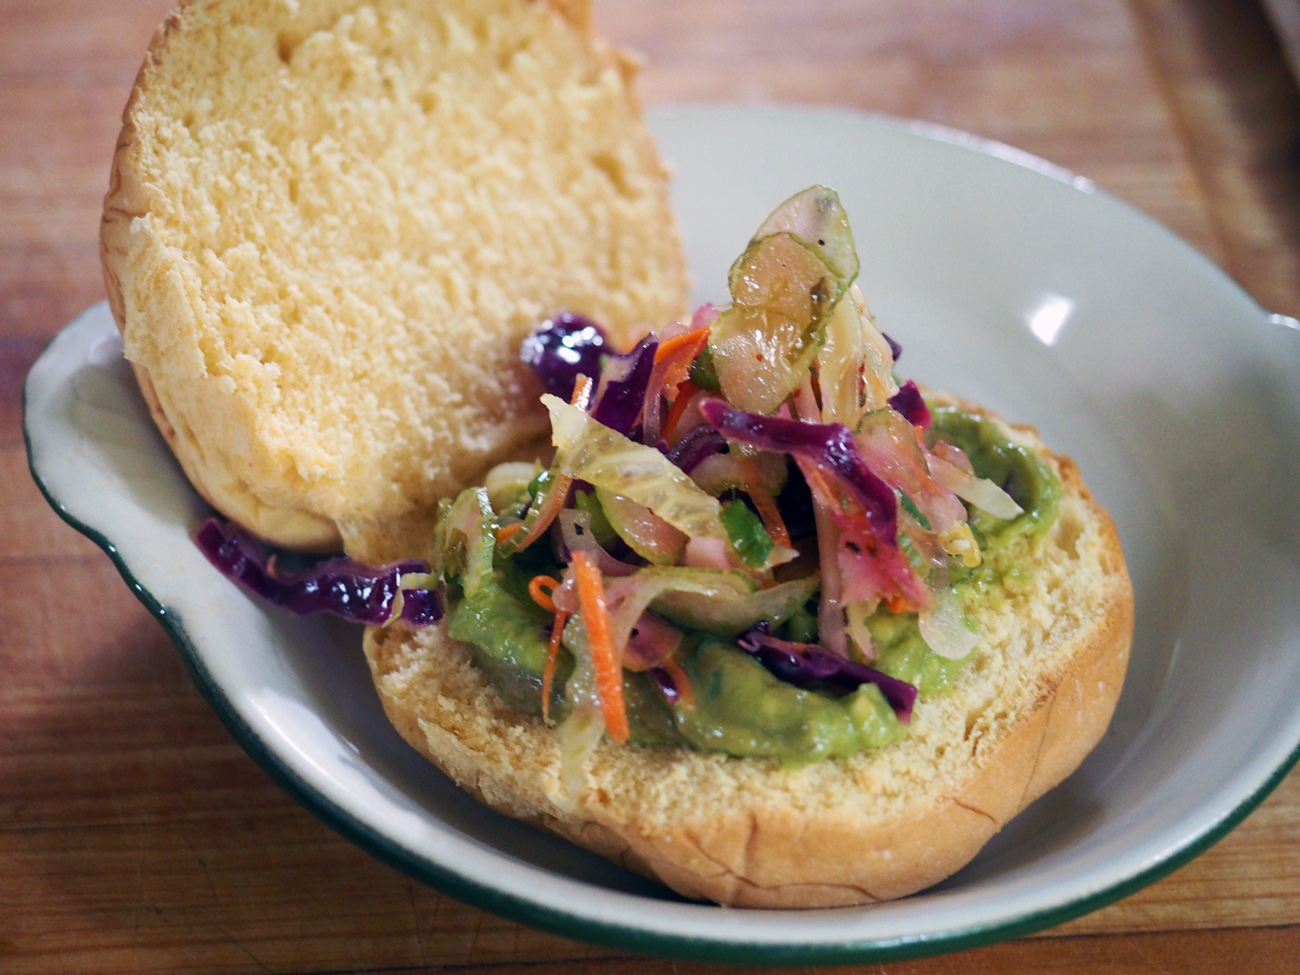 Start piling on the flavors. I think the slaw works nicely with the guacamole.